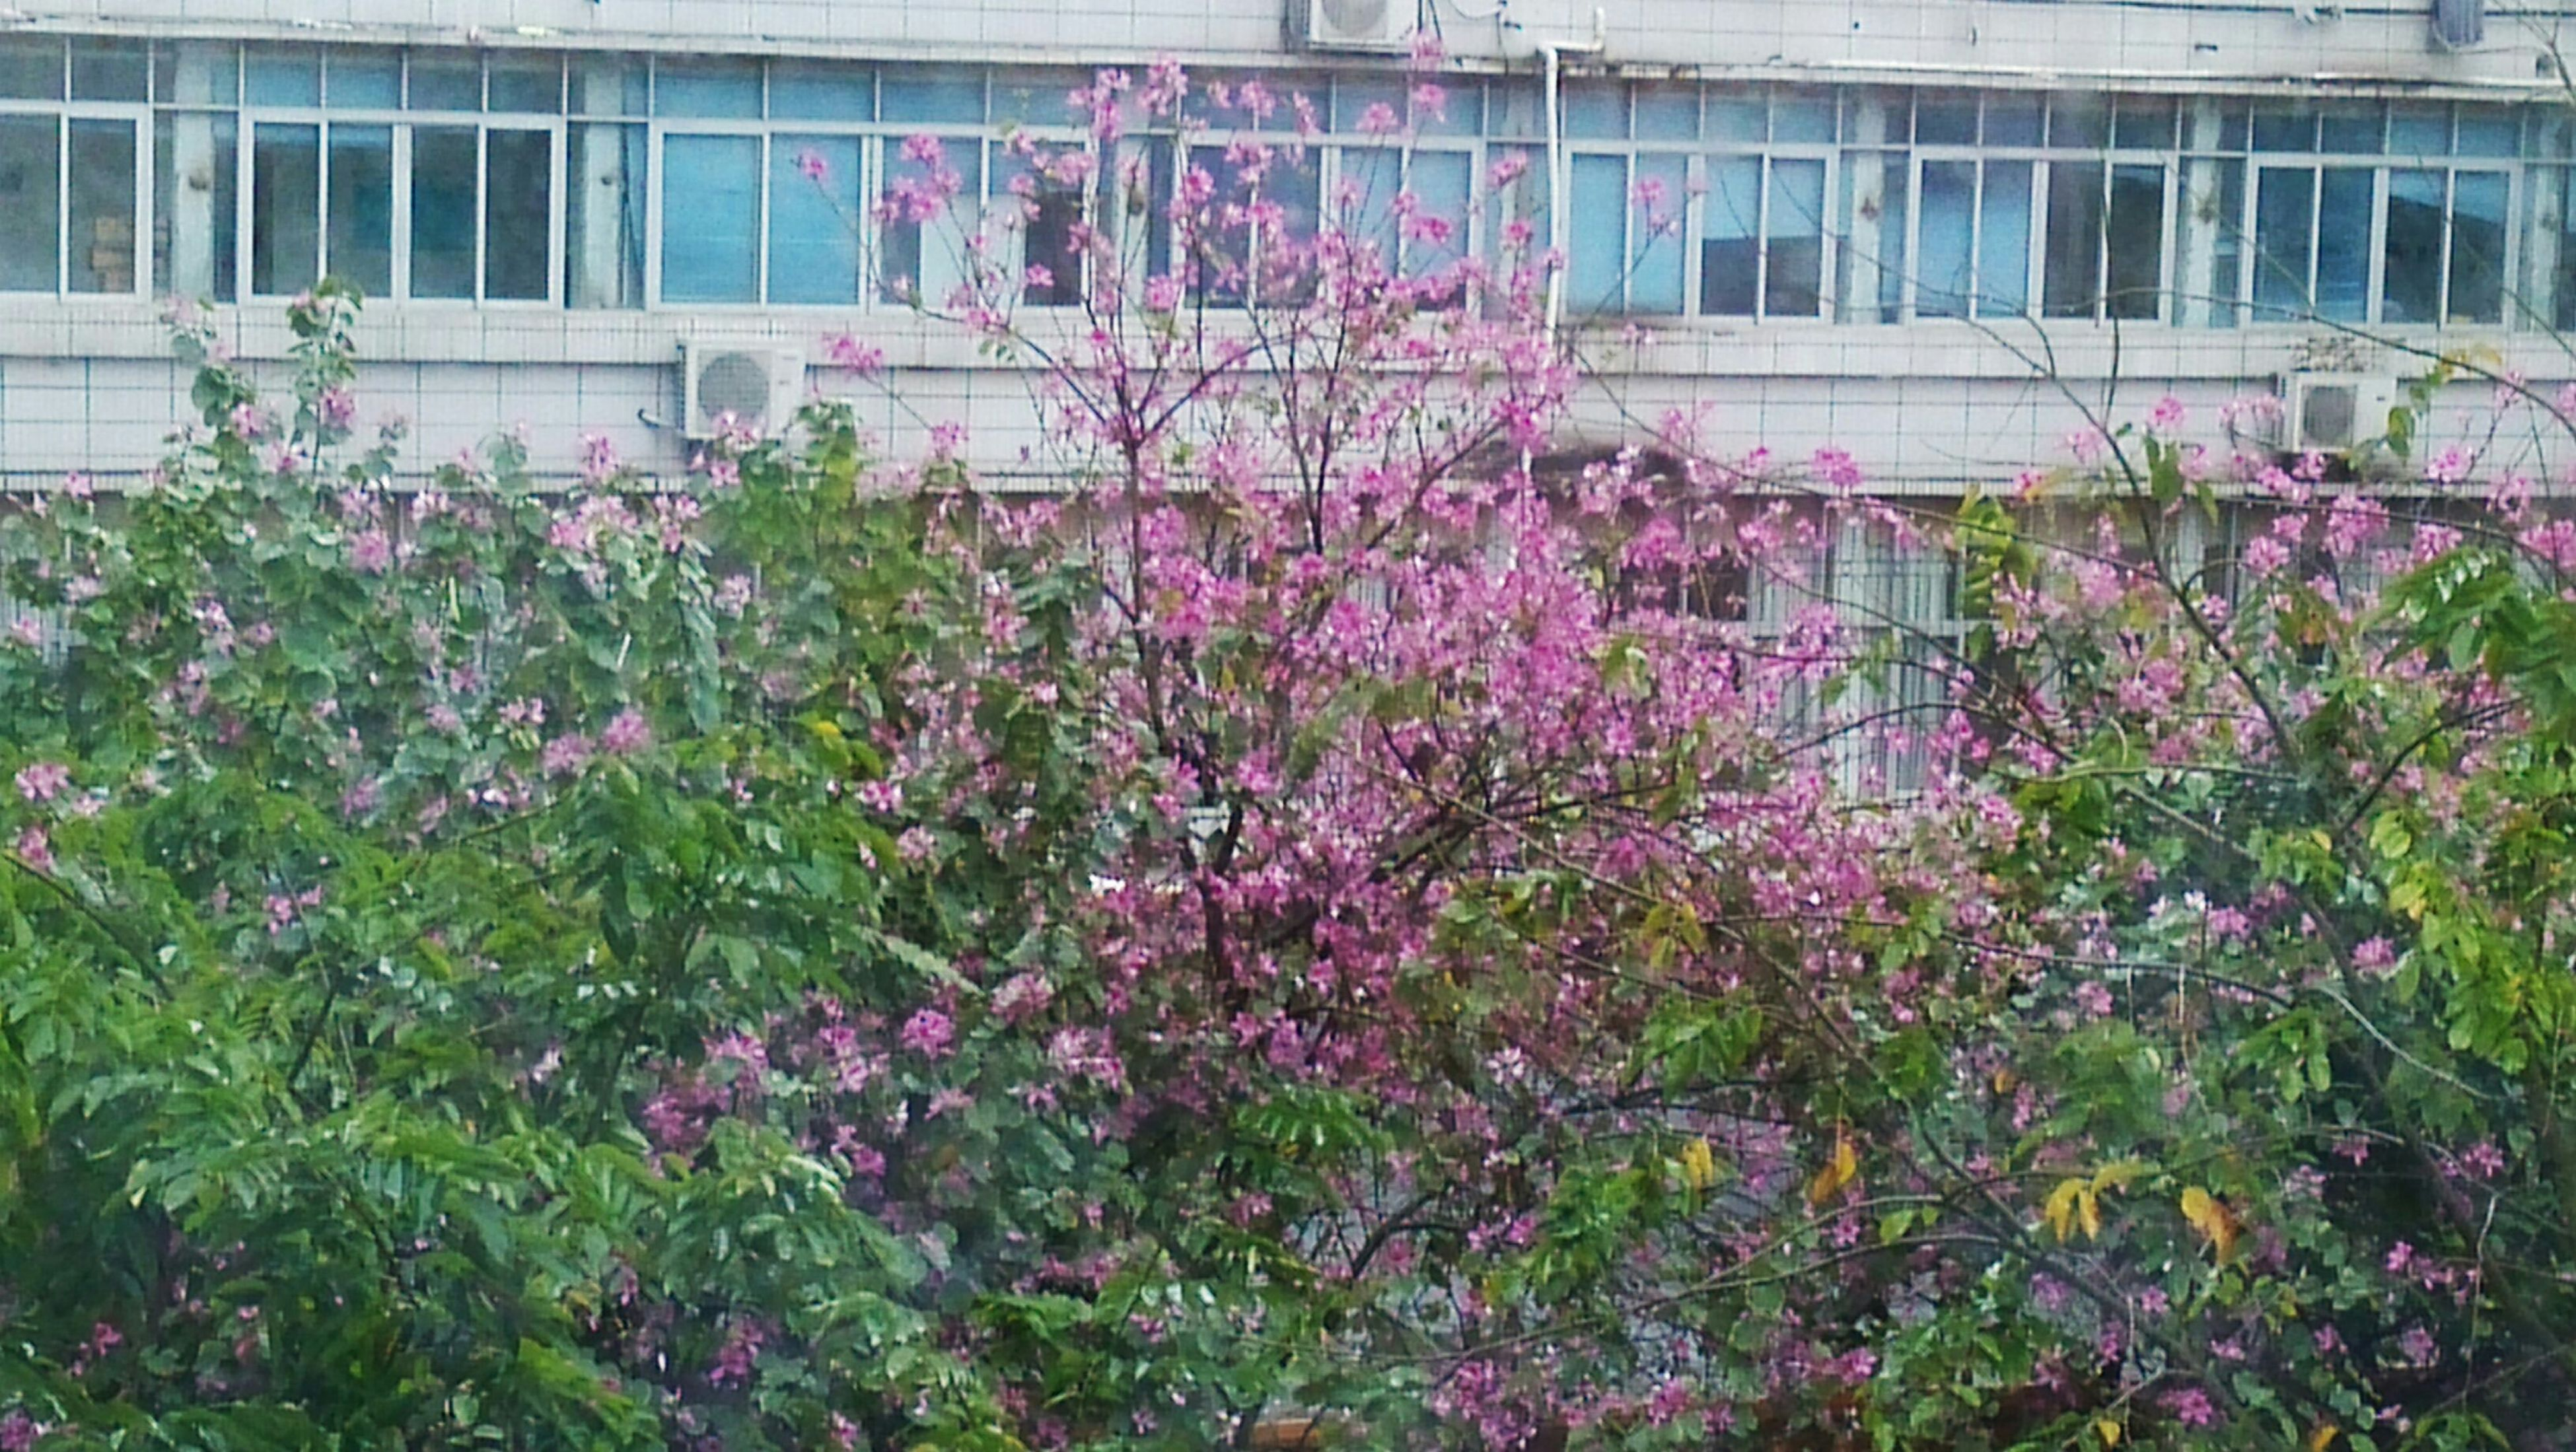 flower, building exterior, freshness, growth, architecture, built structure, fragility, plant, blooming, pink color, nature, beauty in nature, tree, blossom, in bloom, low angle view, day, outdoors, branch, petal